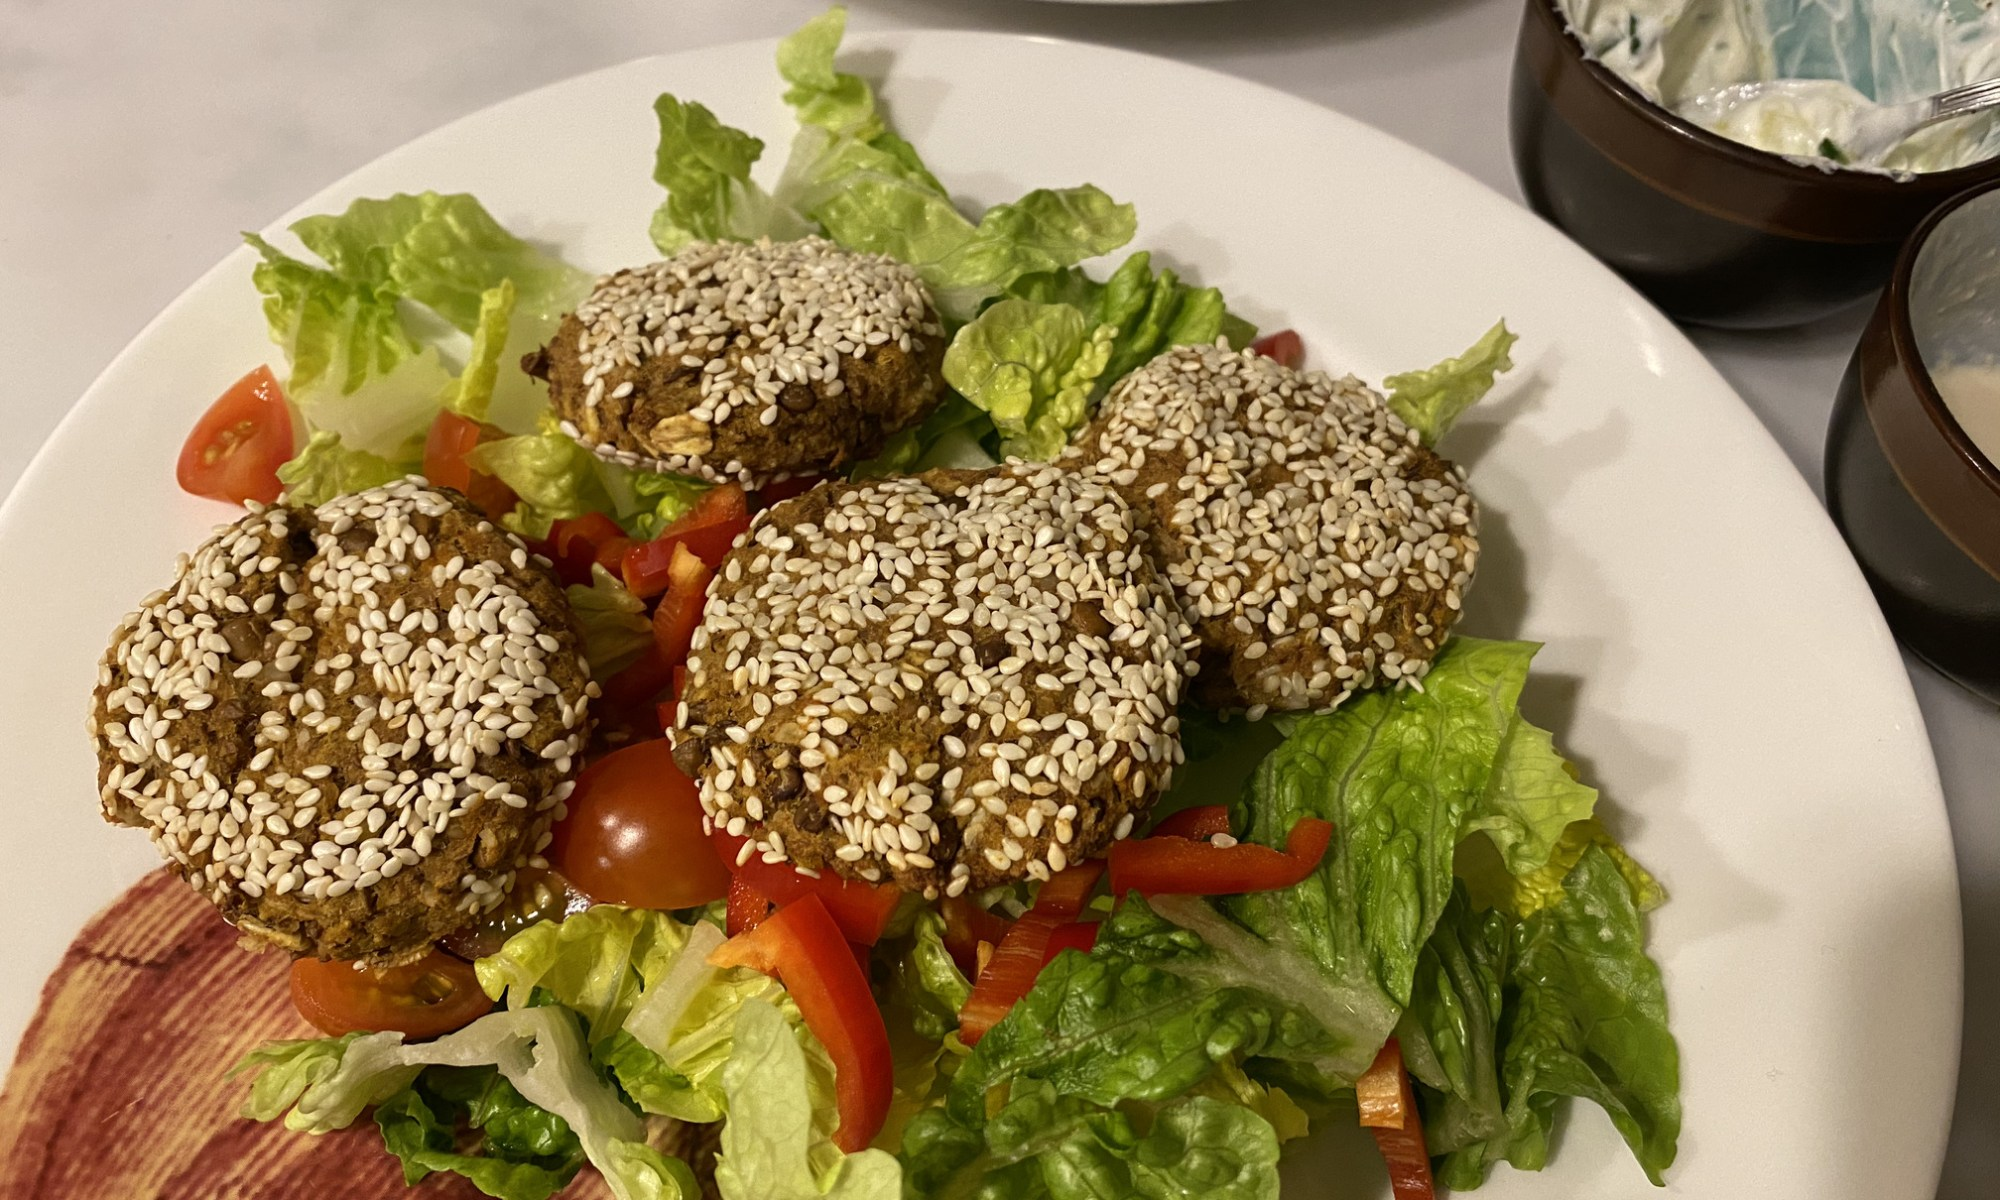 Lentil patties on top of a salad with lettuce, red pepper and tomatoes